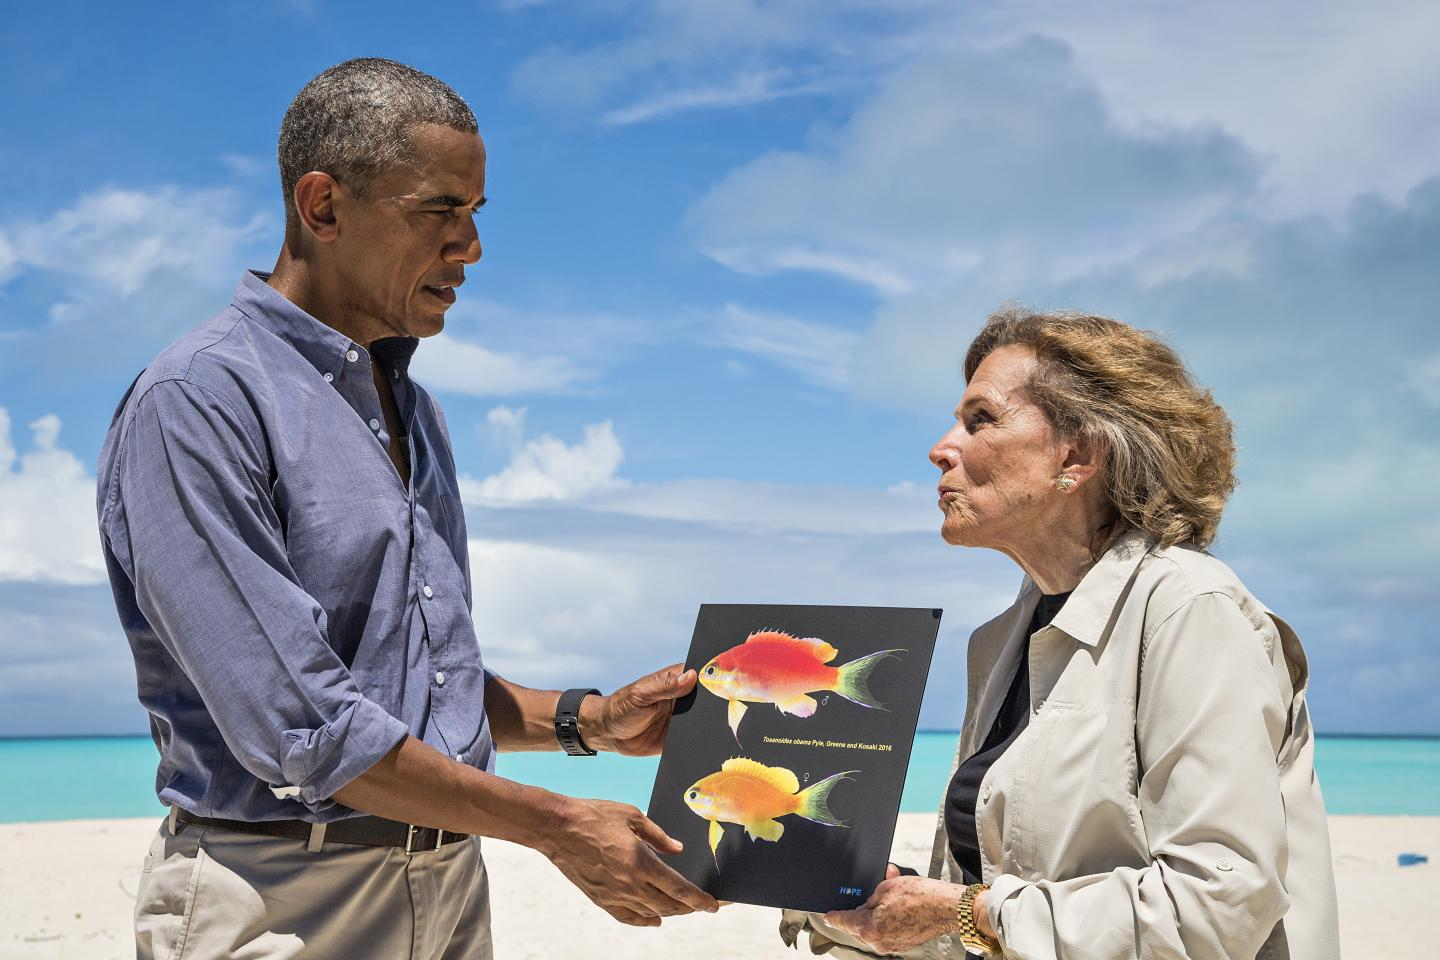 New species of fish found in Papahanaumokuakea named after President Obama